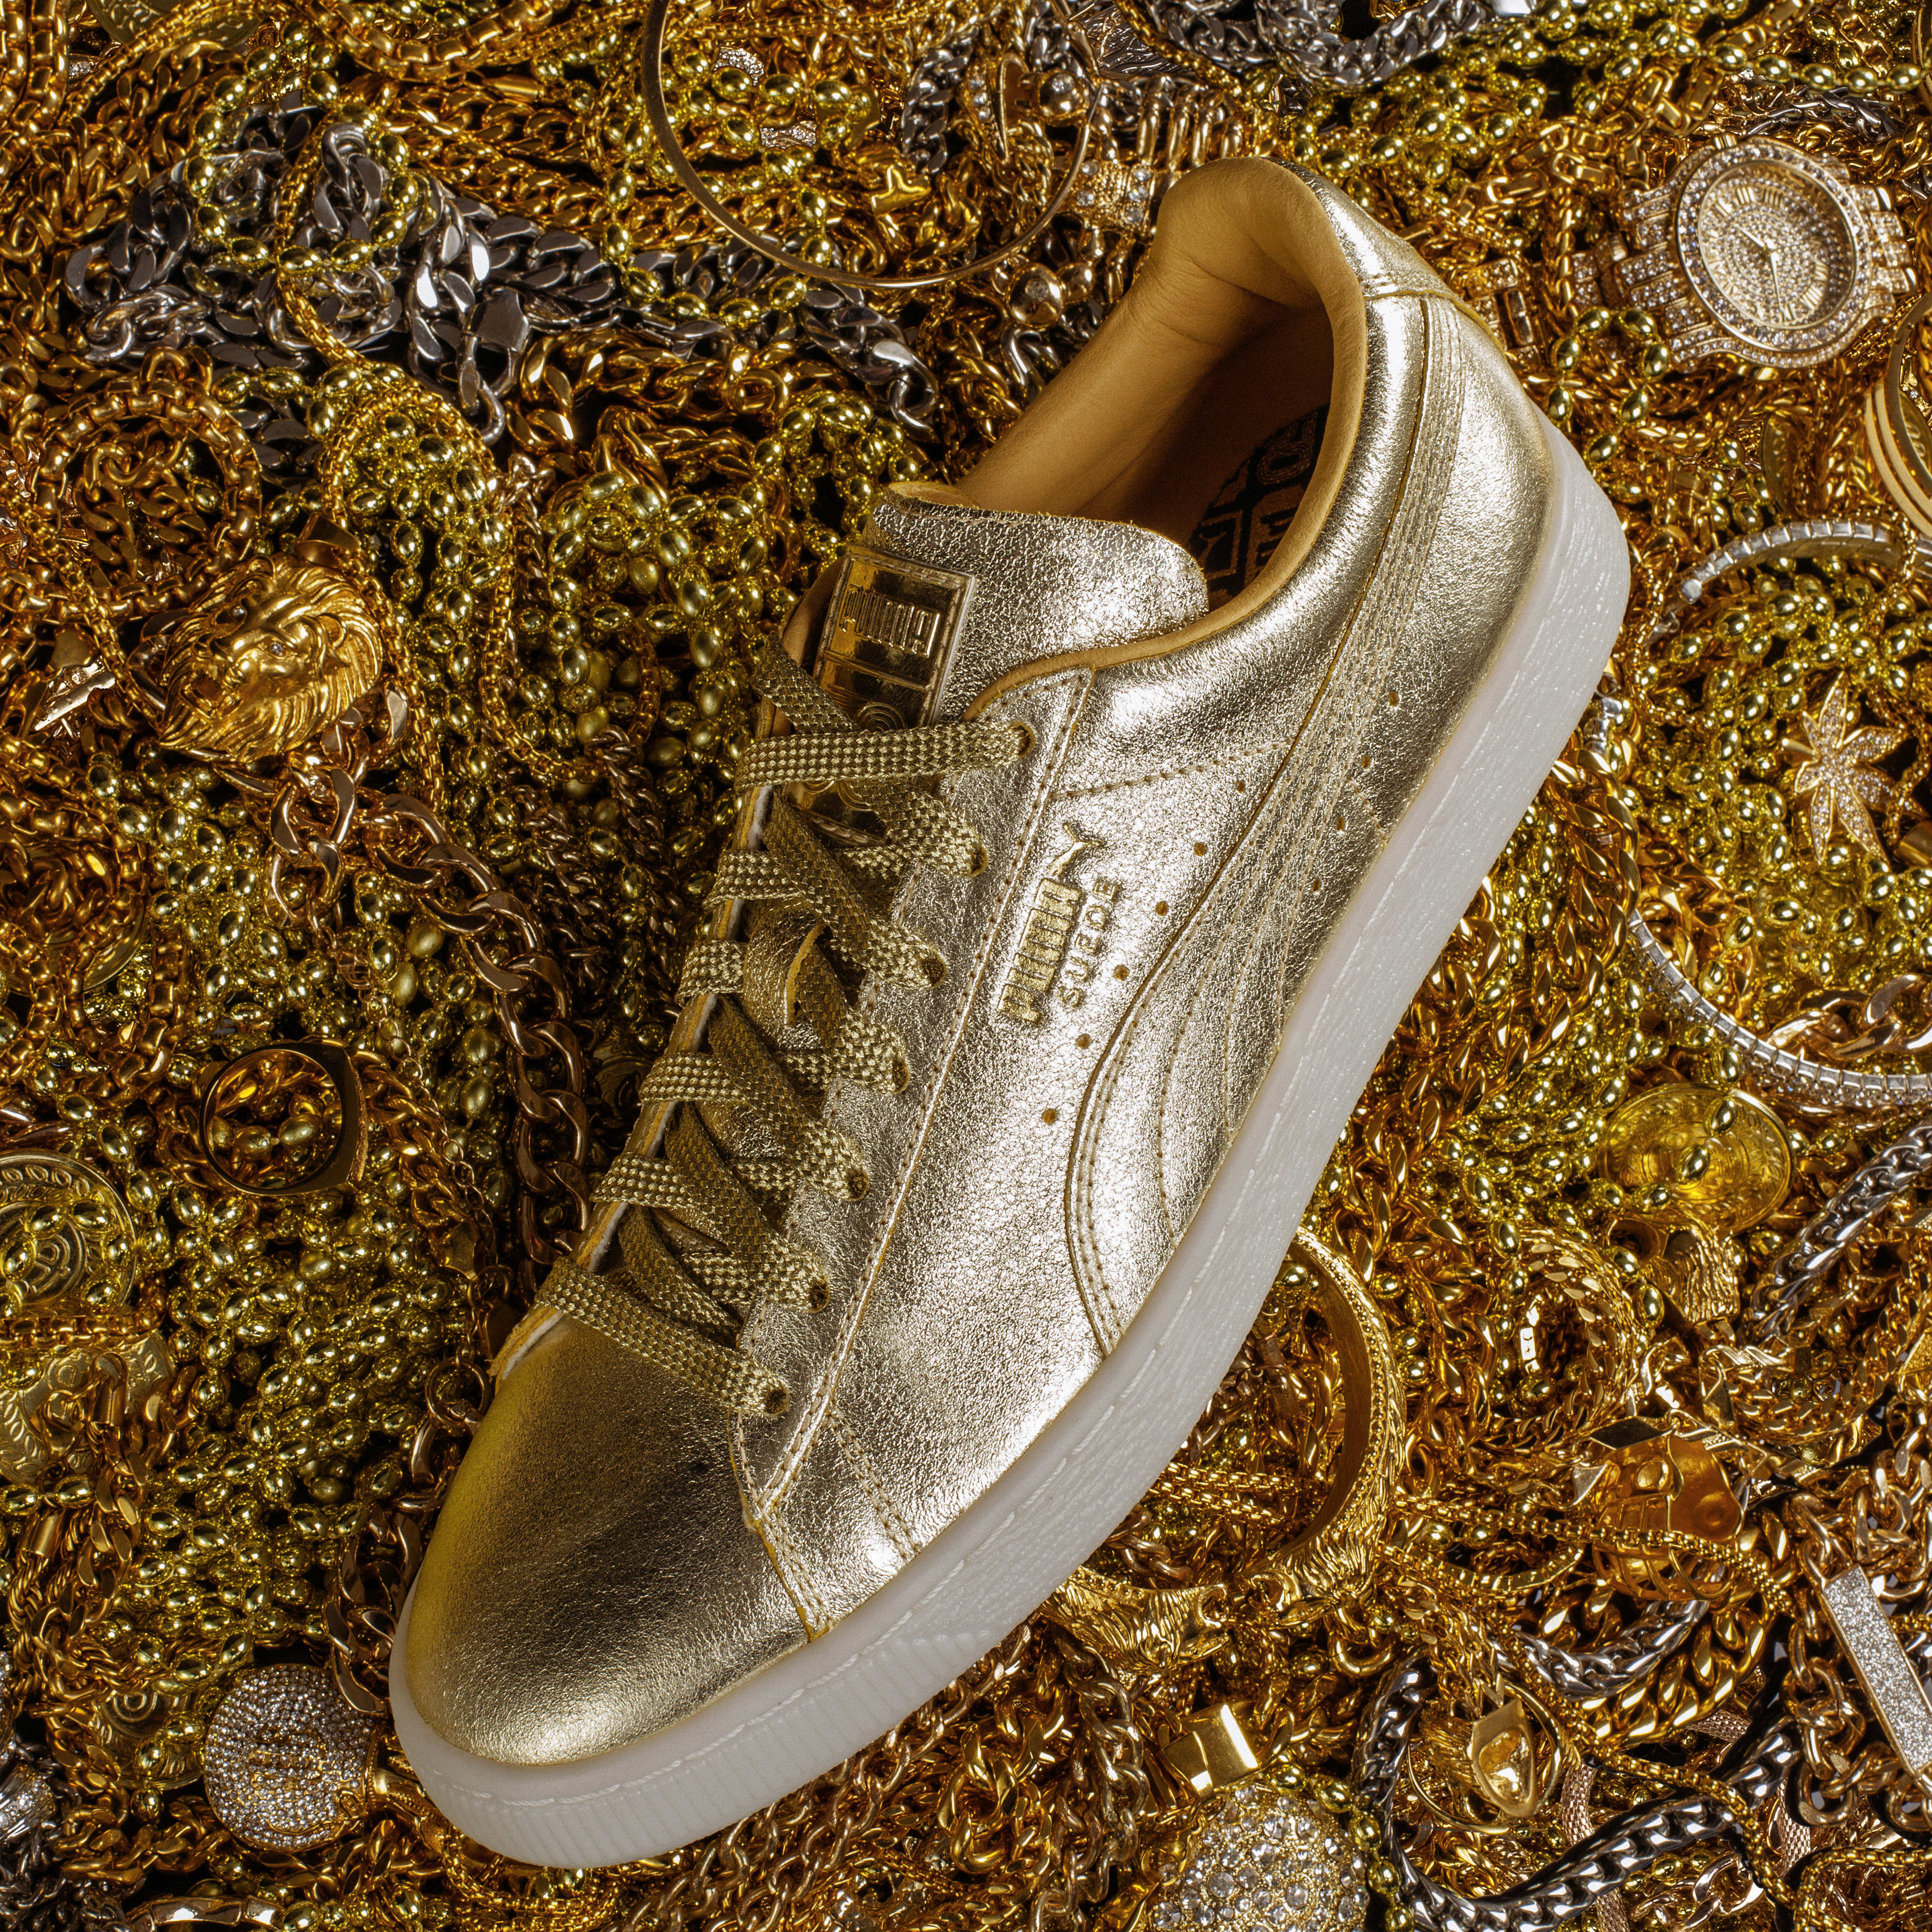 Puma Releases Golden Suede To Celebrate Suede's 50th Anniversary